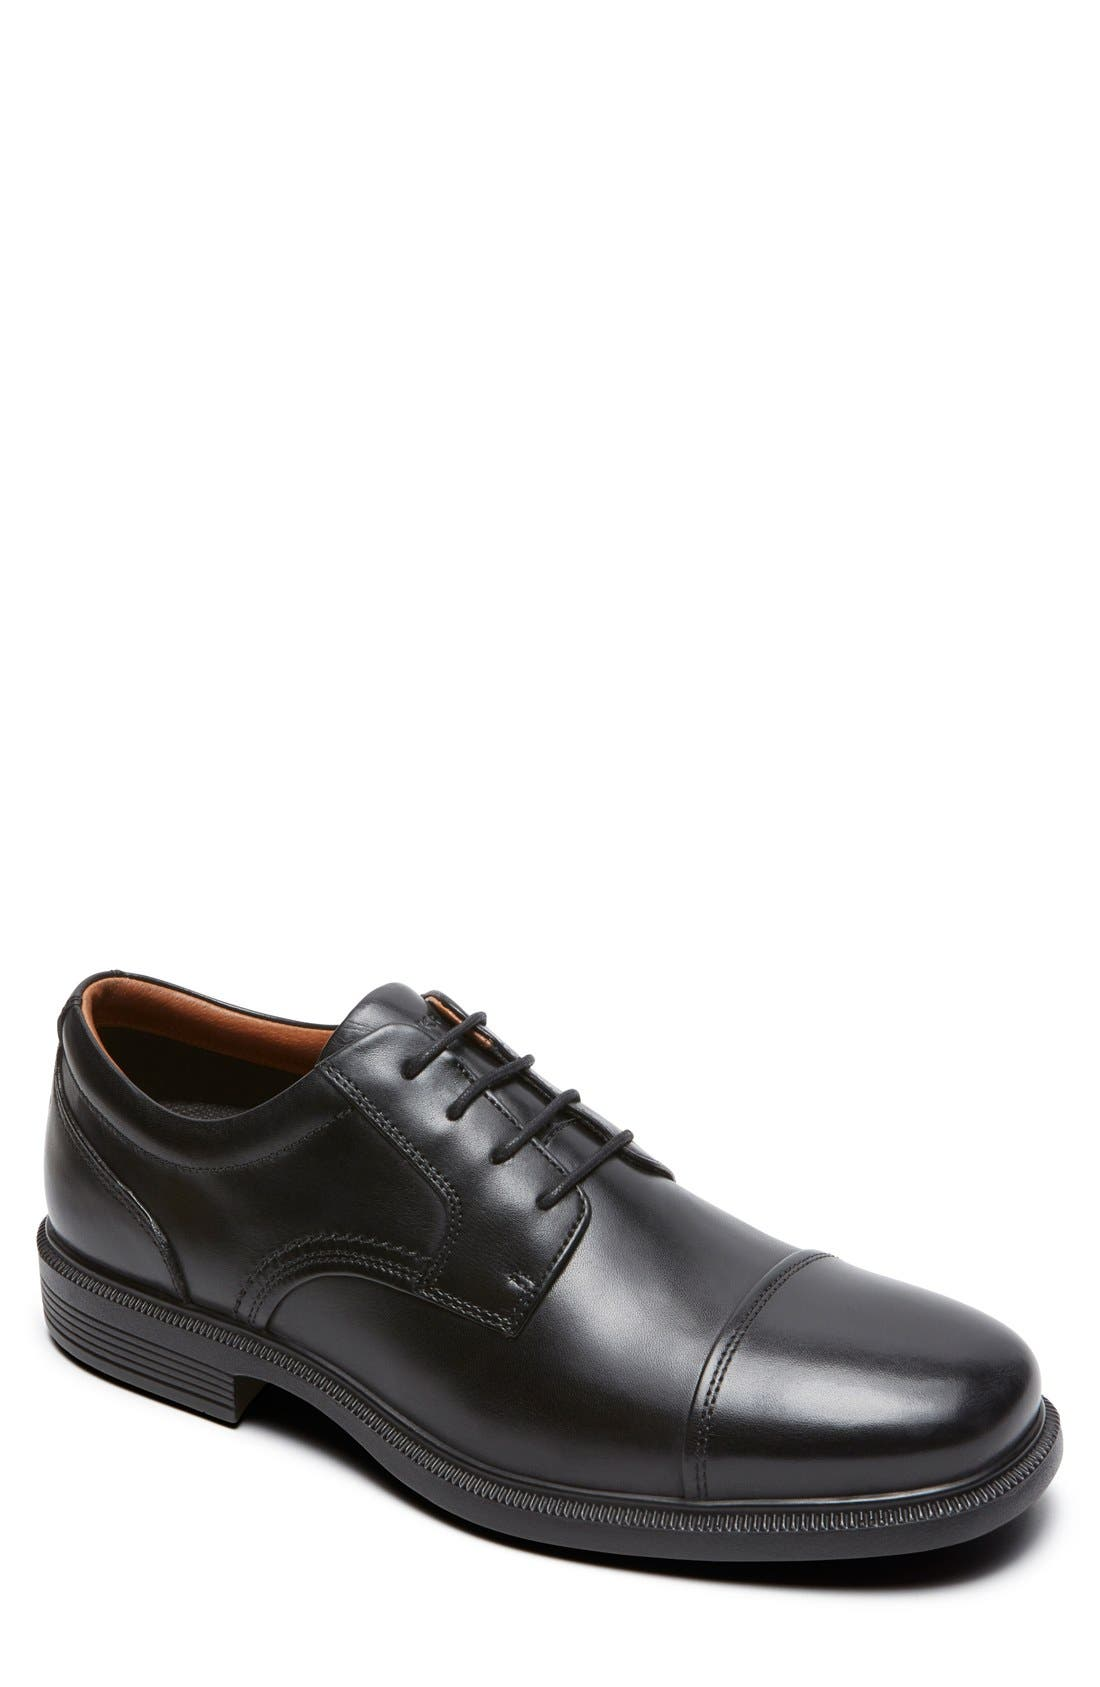 'DresSports Luxe' Cap Toe Derby,                             Main thumbnail 1, color,                             BLACK